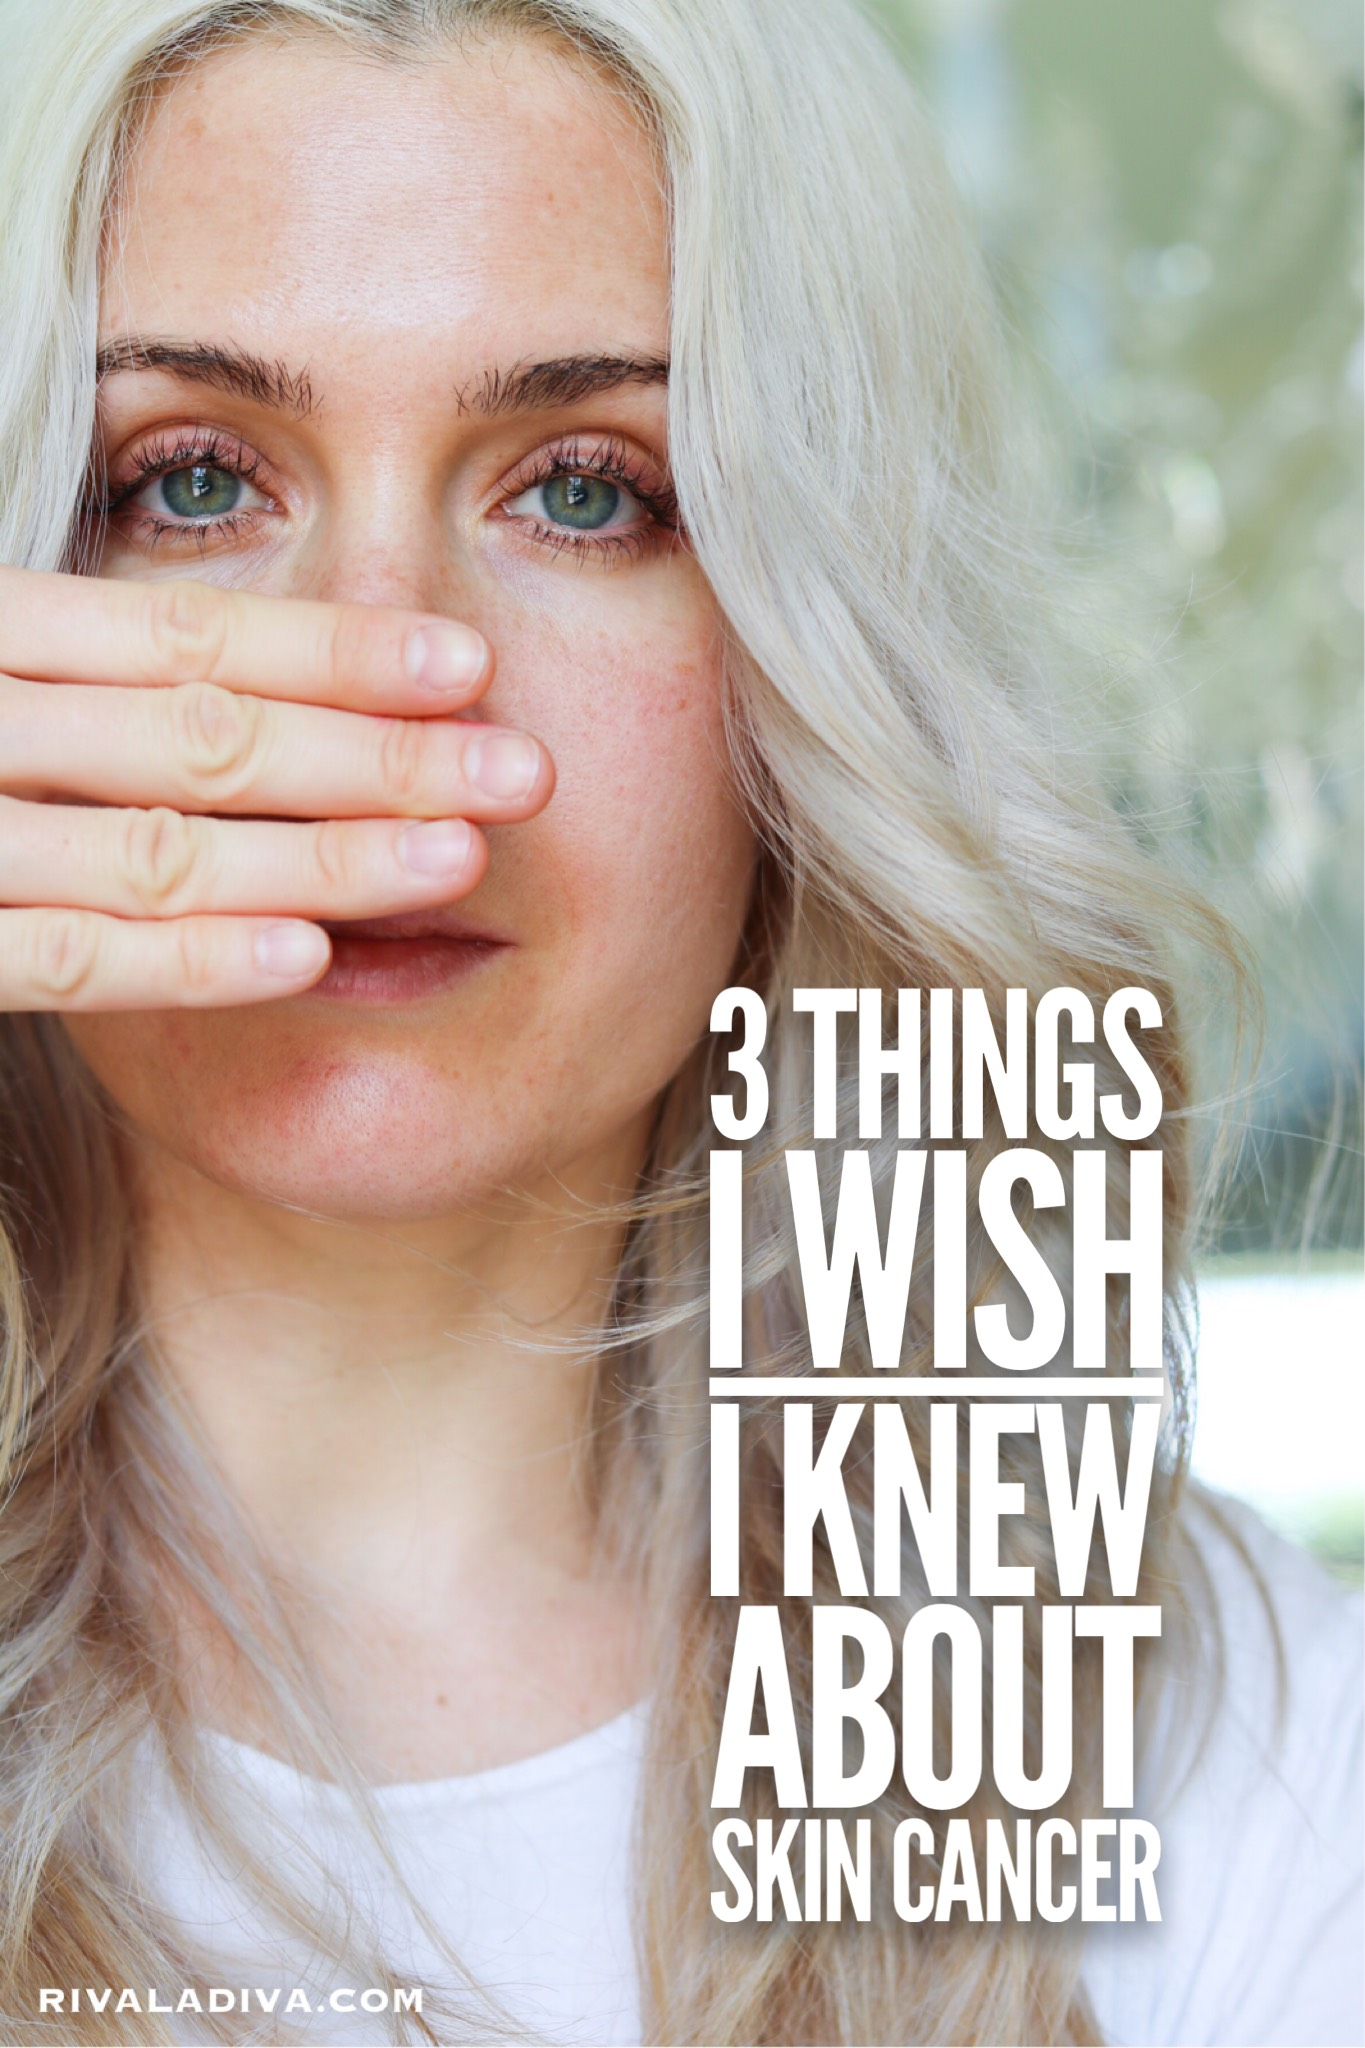 SKIN CANCER: 3 things I wish I knew